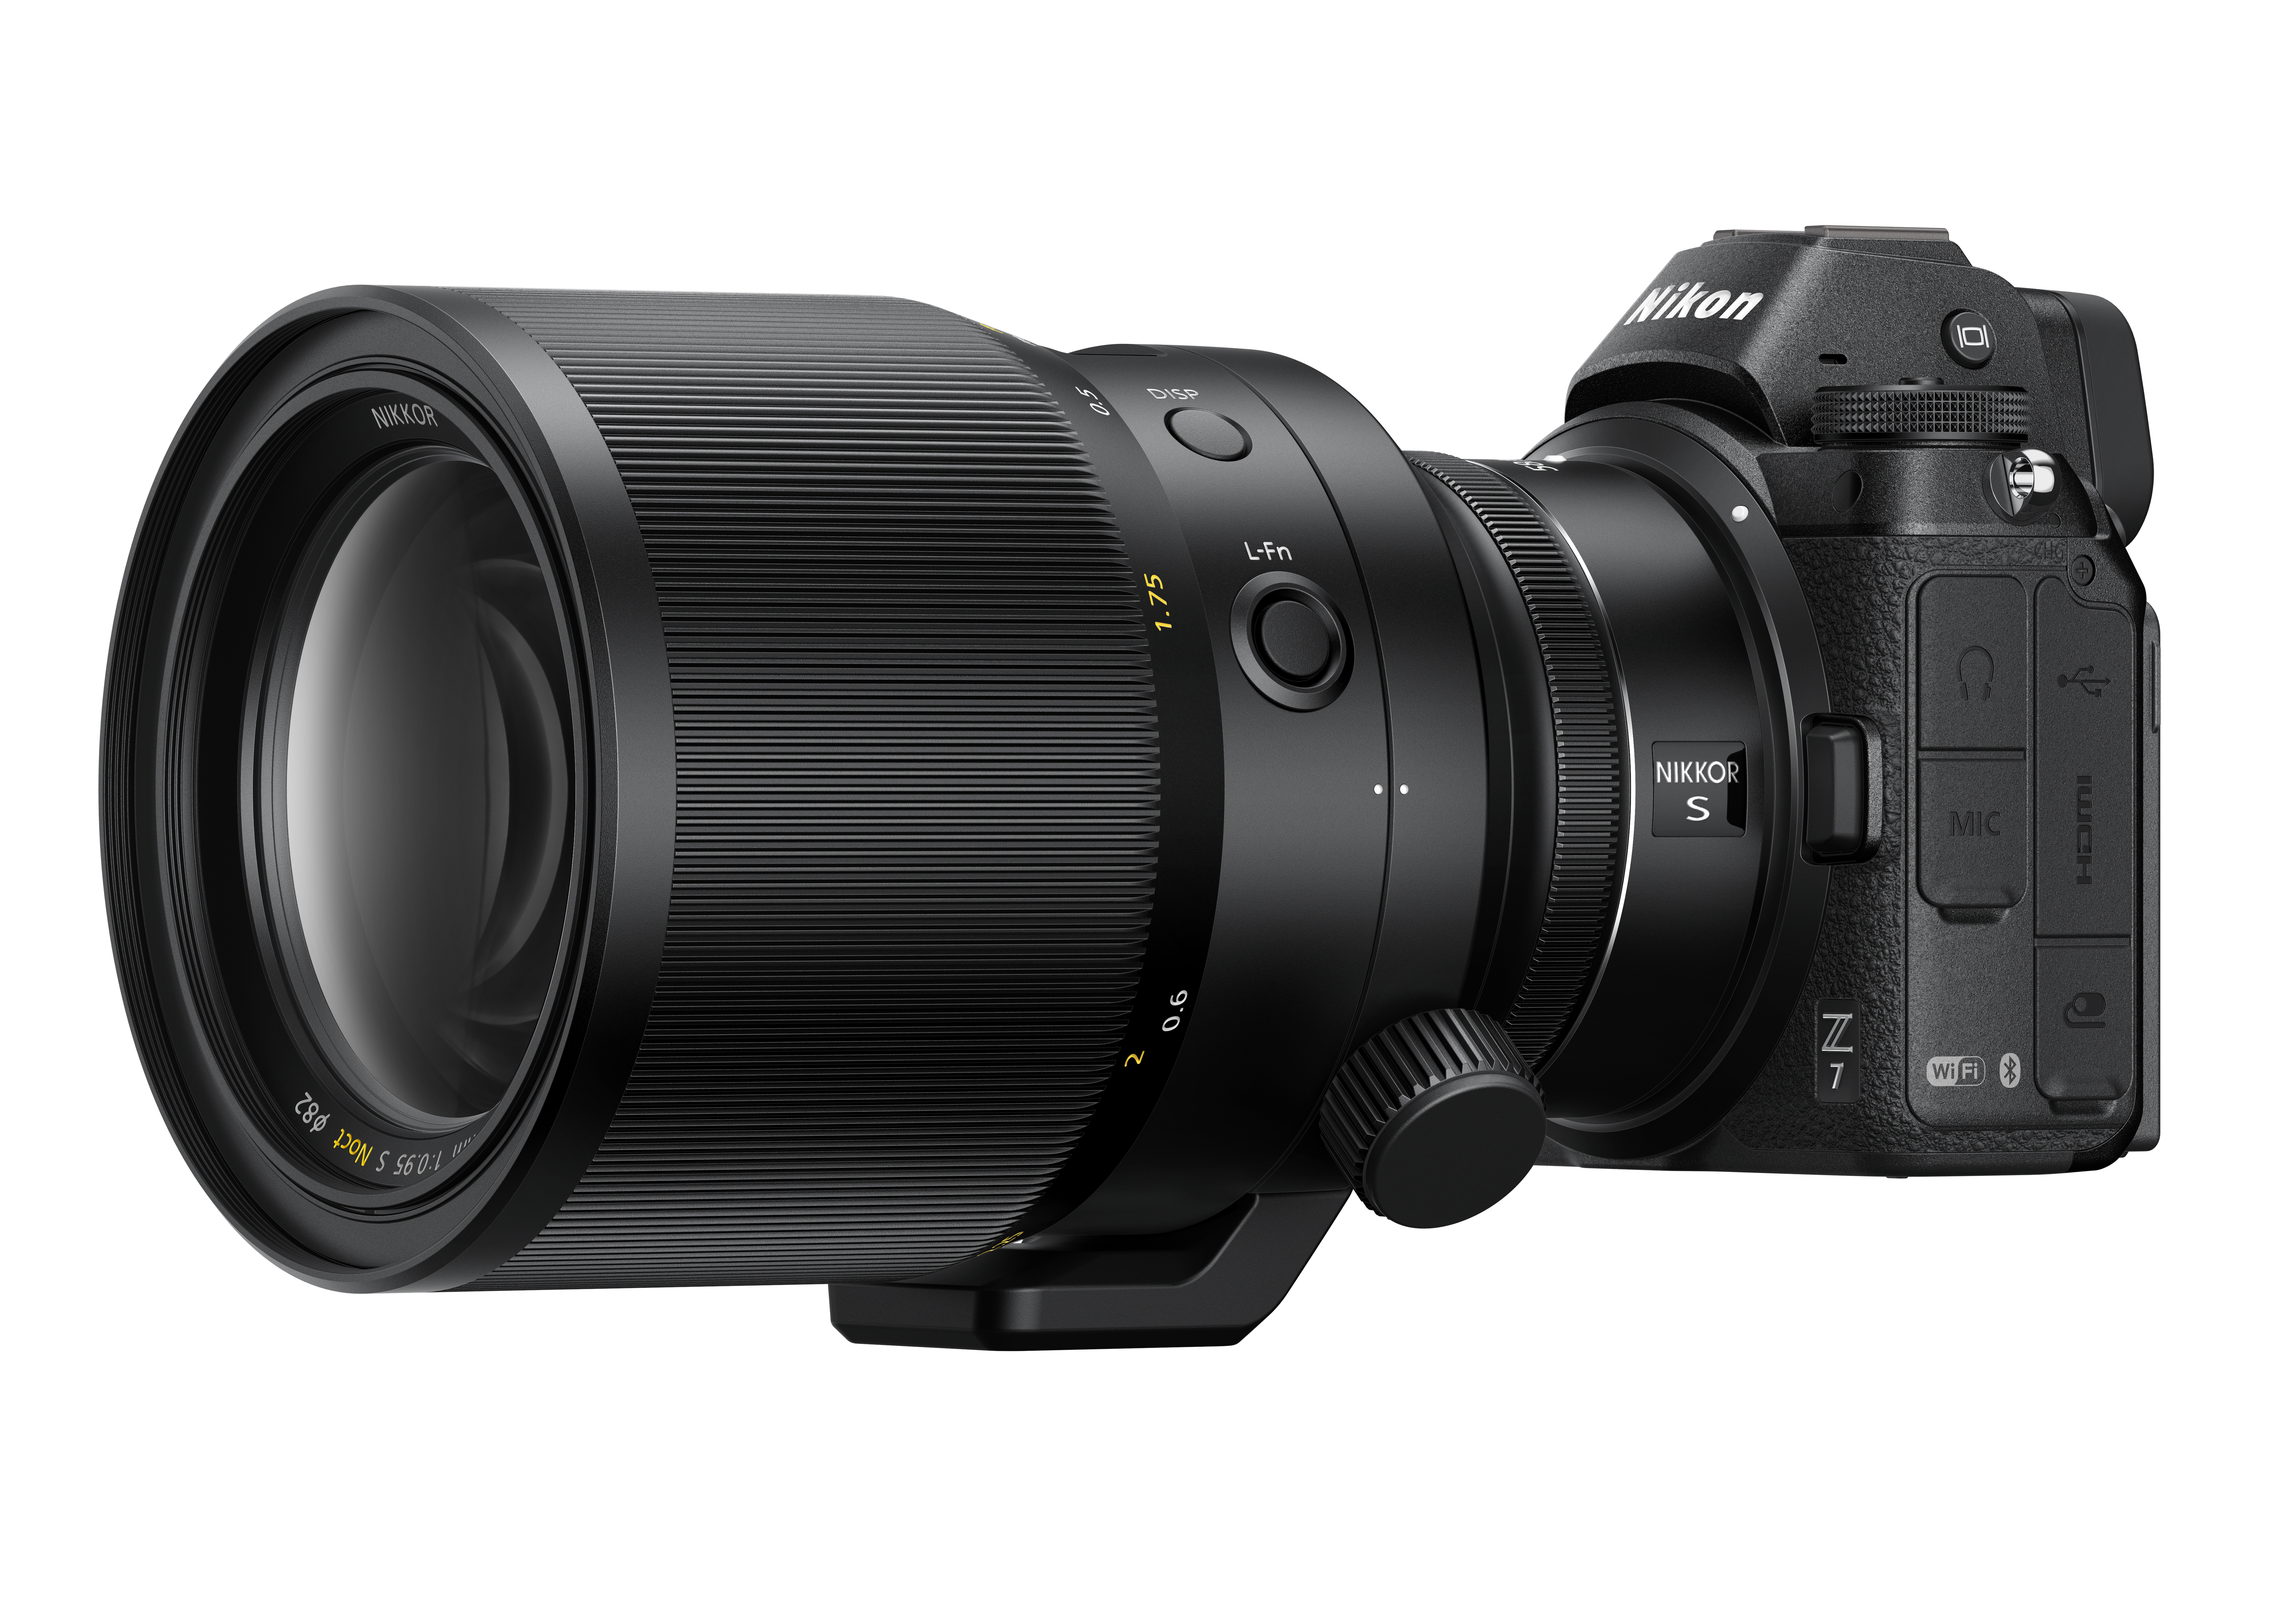 Nikon Releases Their Fastest Lens: The NikkorZ 58mm f/0.95 S NOCT 1